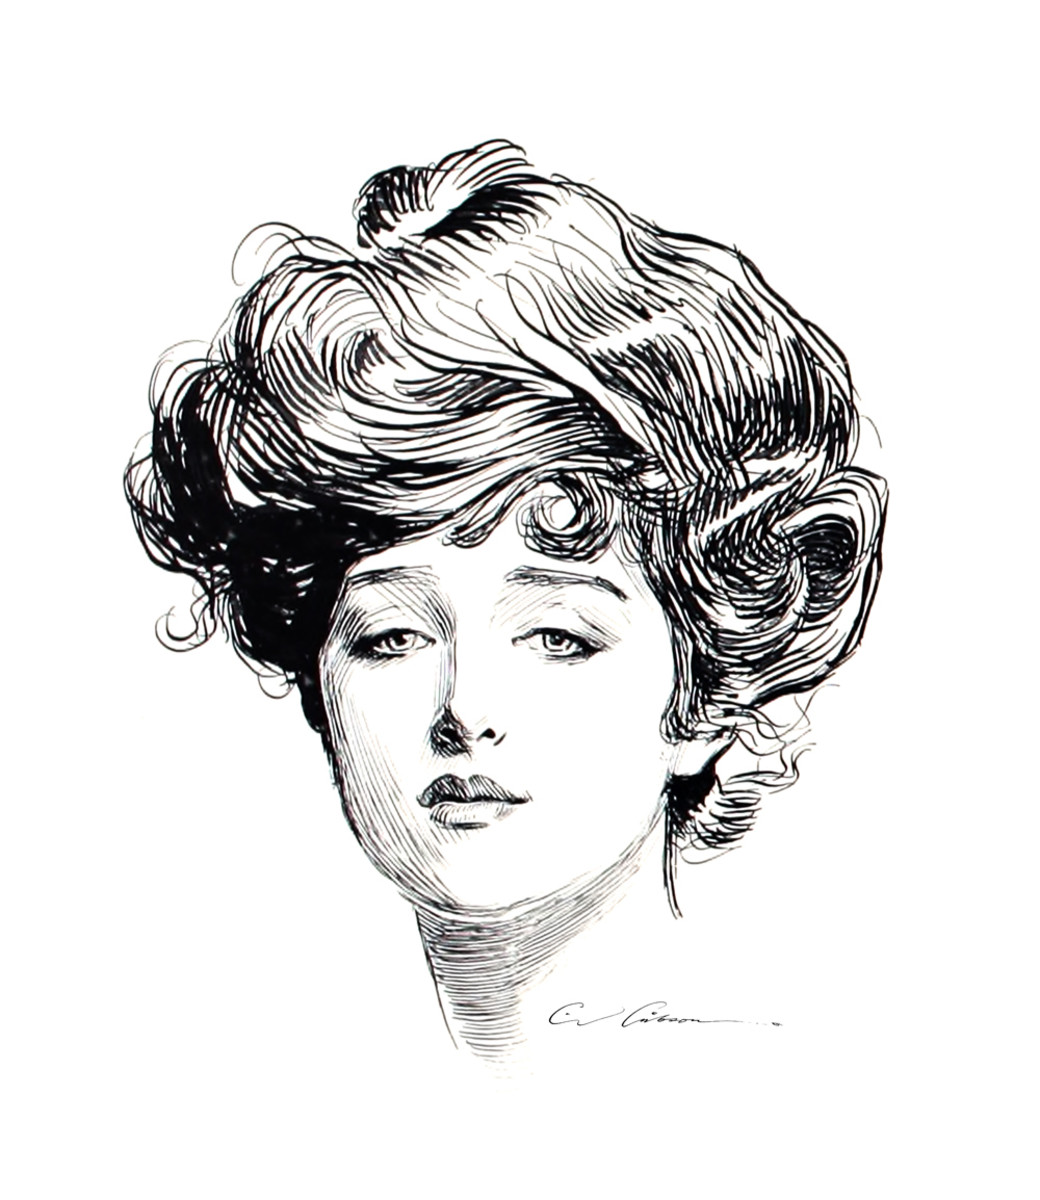 The Most Iconic Gibson Girl, Irene Langhorne.